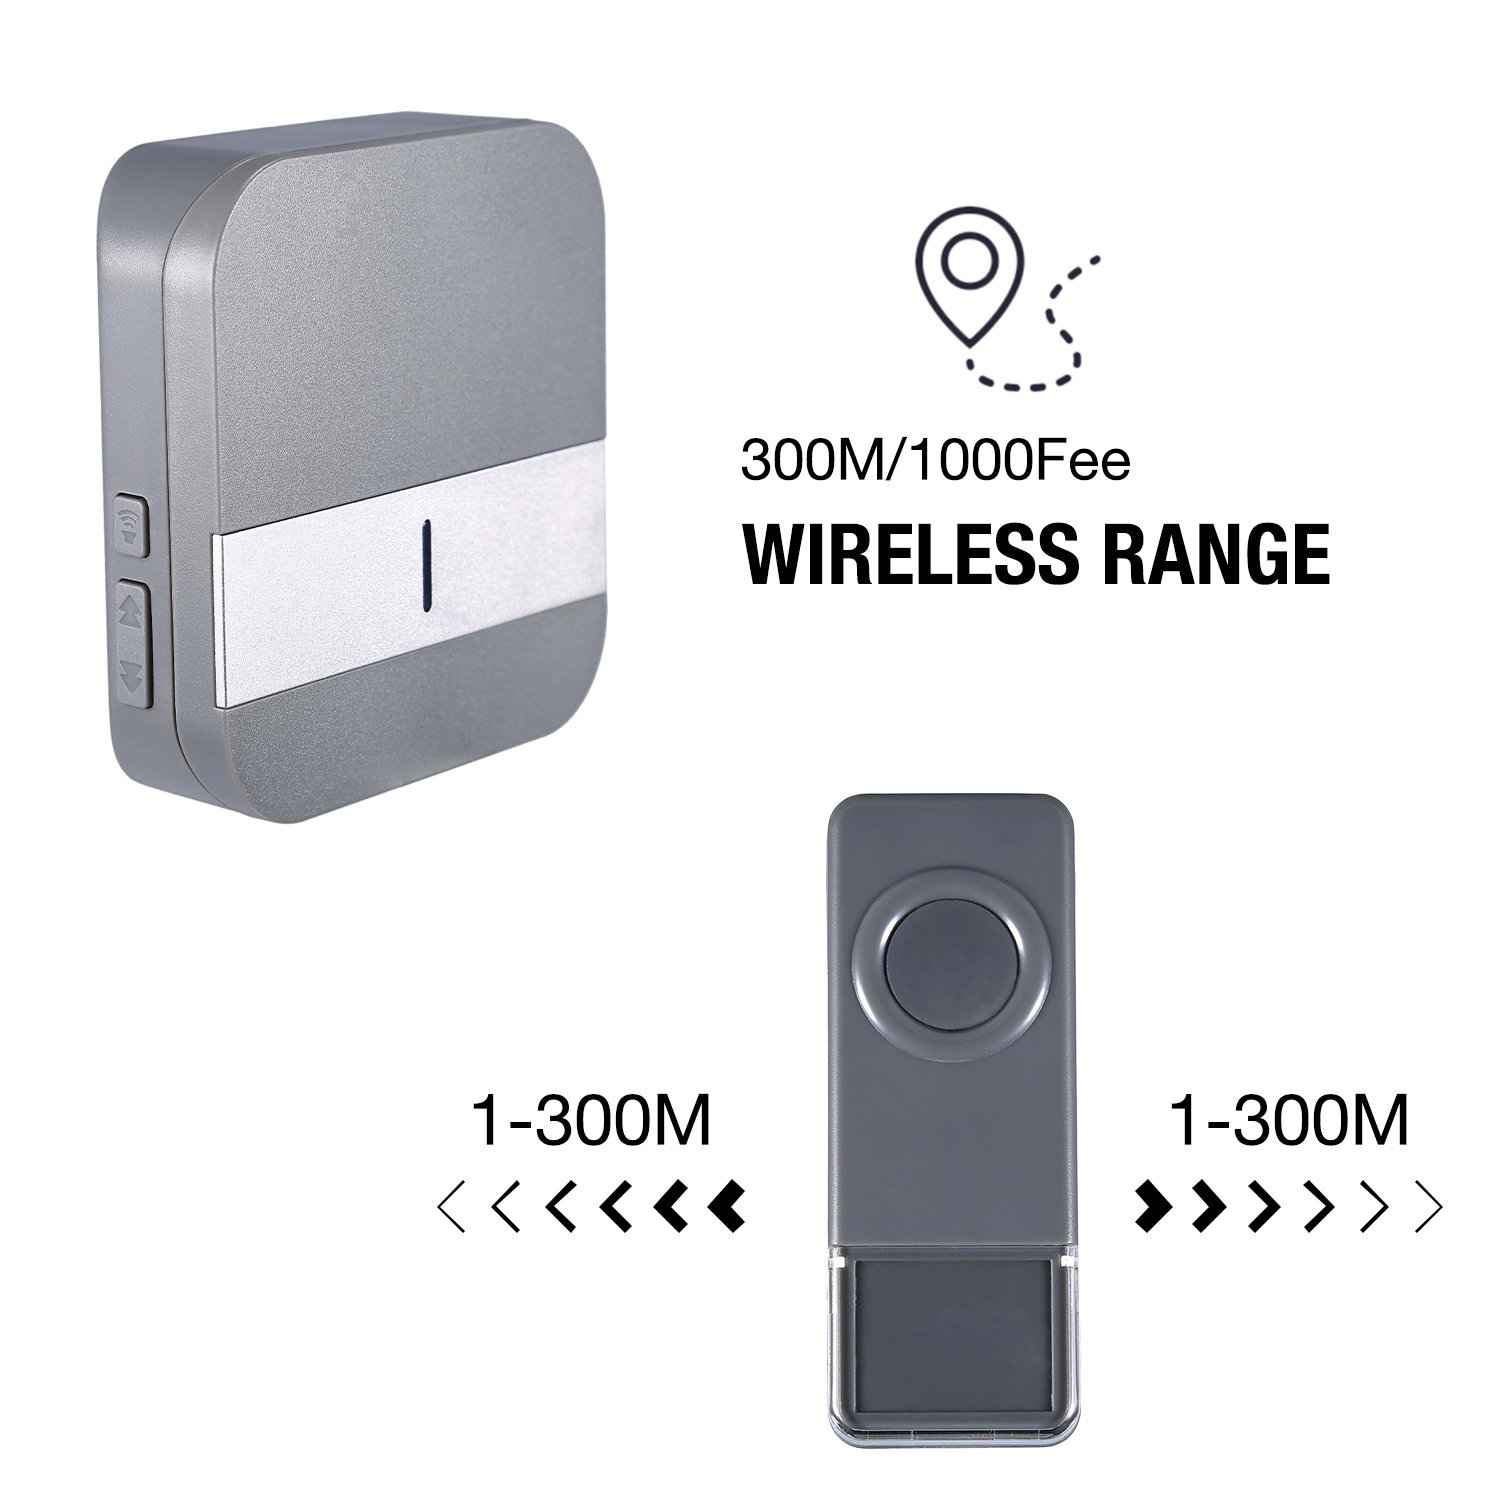 Portable Wireless Doorbell Kit Waterproof Musical Door Bell Electrical Wiring In The Home Deaf Doorbells Operating At 1000ft 300m Range Chimes 1 Push Button Transmitter 2 Receiver 52 Chime